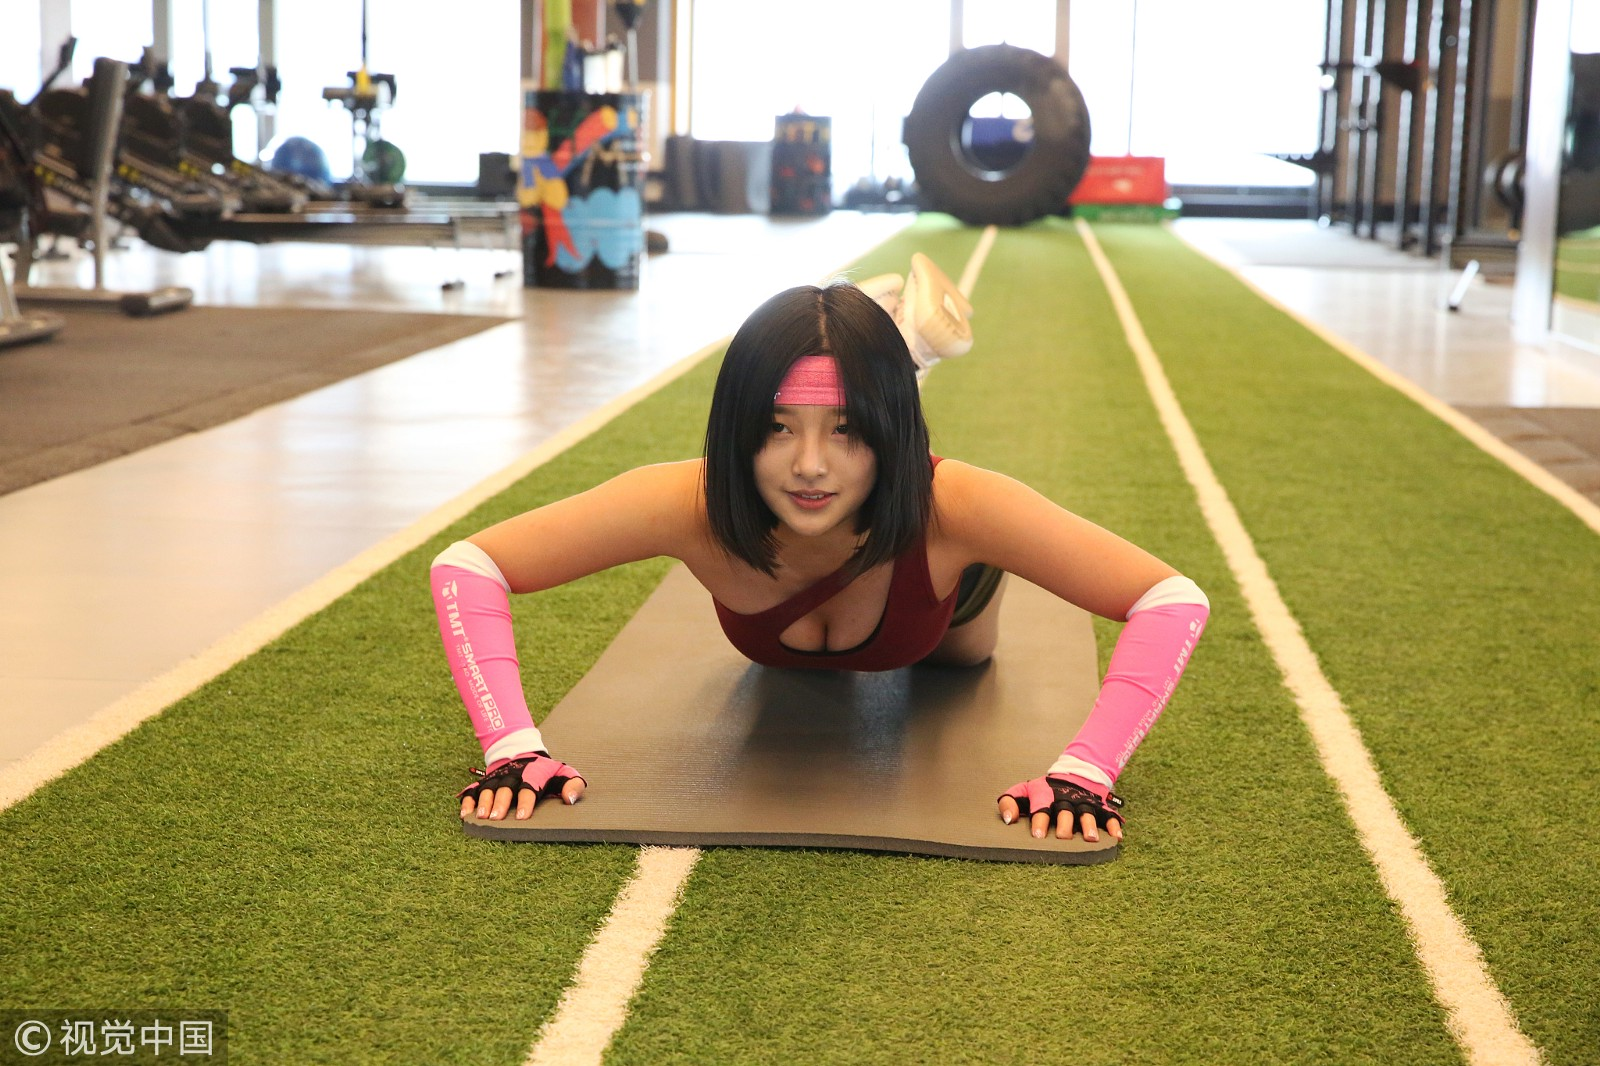 The young woman has said that she spends about six hours a day in the gym,  doing squats and lunges to perfect her posterior. She has claimed that  whenever ...